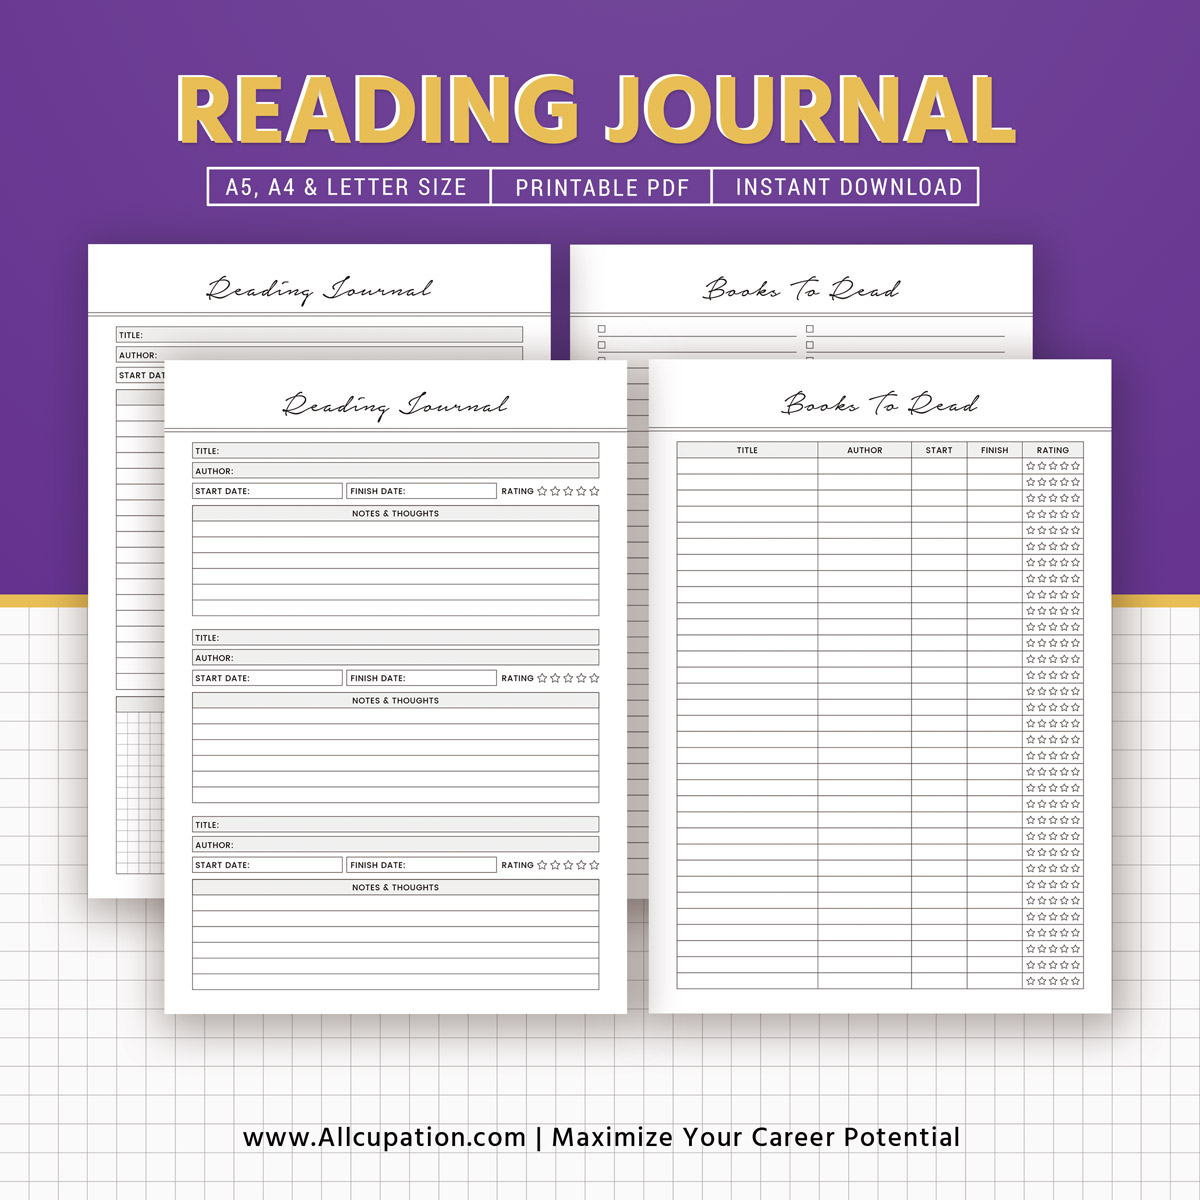 Reading Journal Books To Read Reading Log Book Review Printable Books Planner Planner